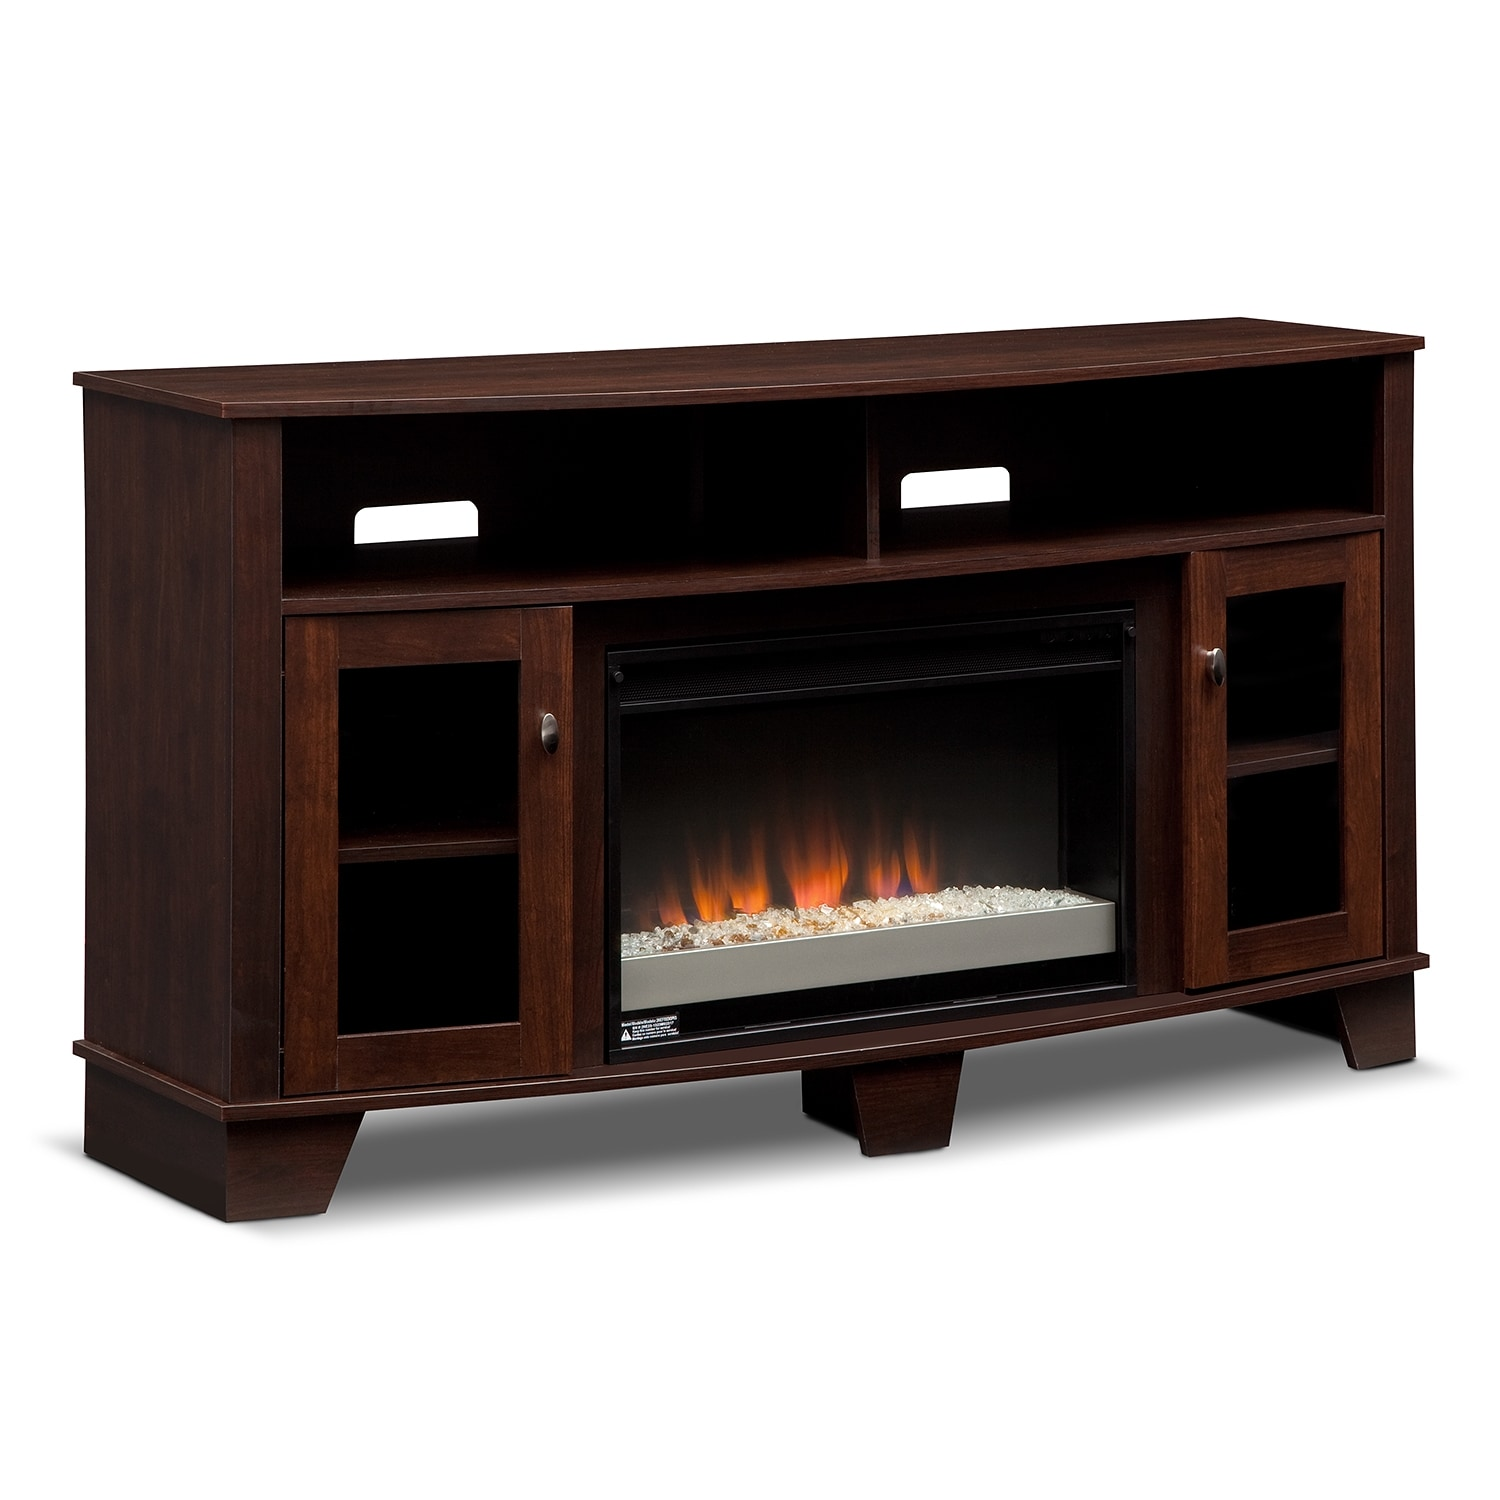 Bentwood Fireplace TV Stand with Contemporary Insert - Dark Cherry